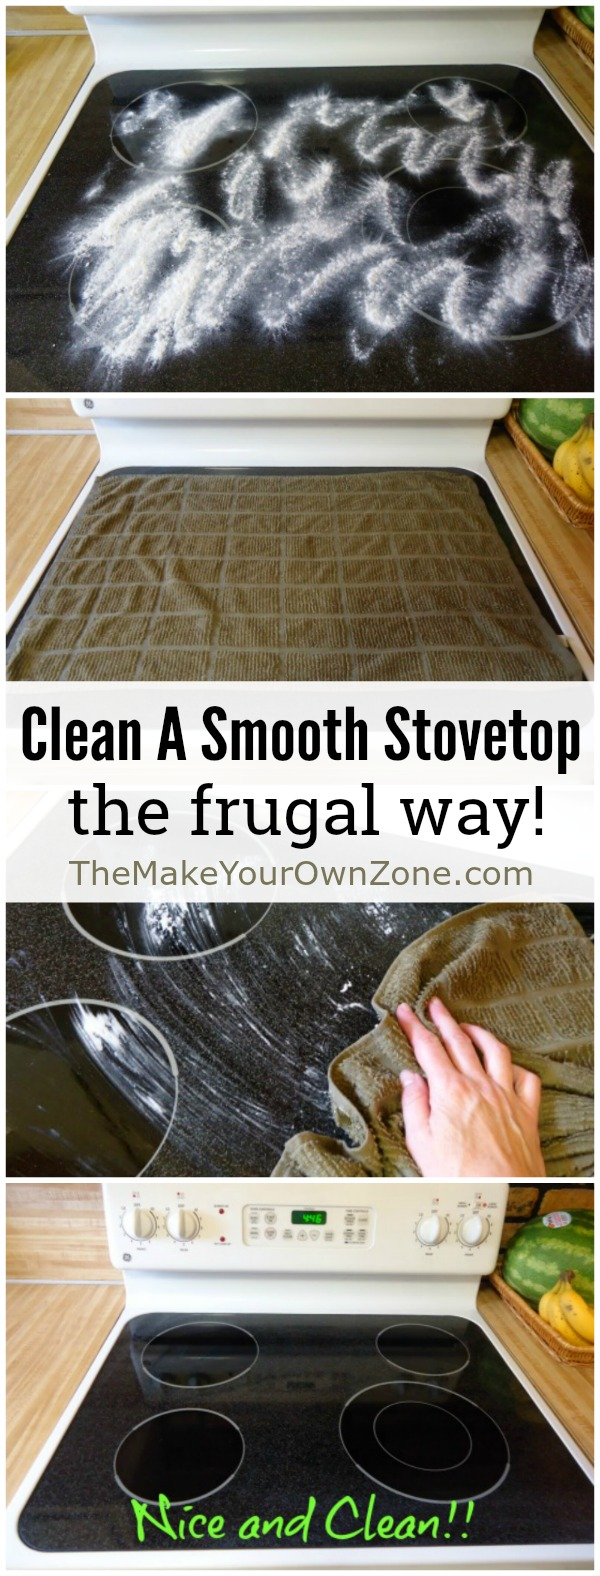 How to clean a smooth stovetop - A simple homemade cleaner that's frugal and works great too!